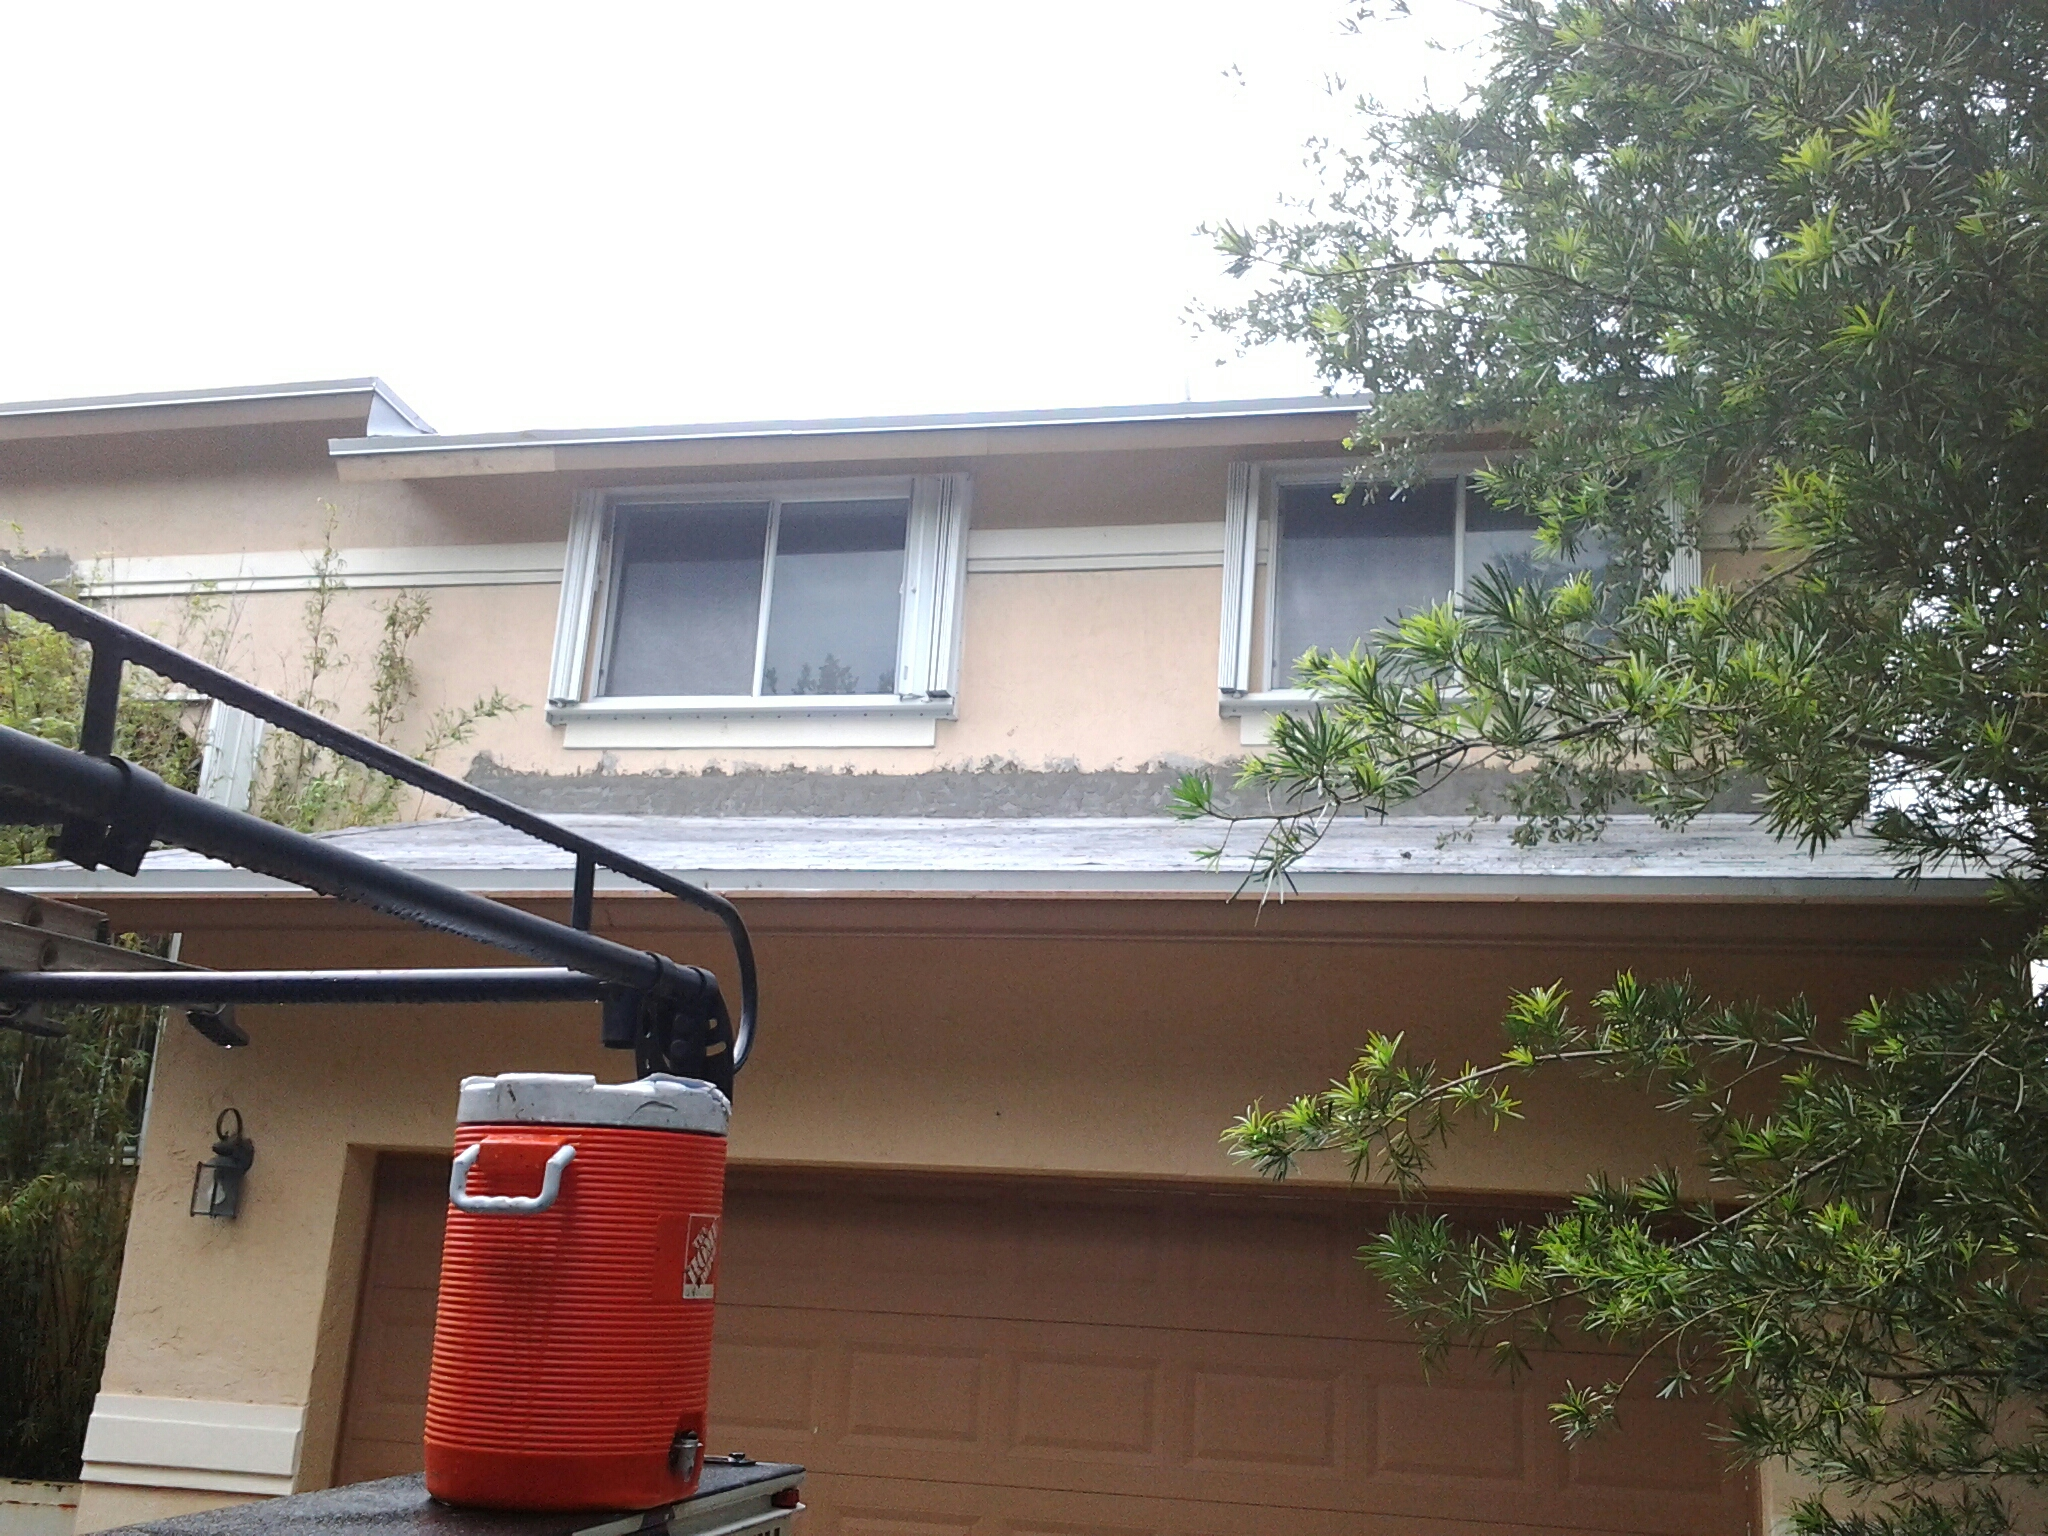 Pompano Beach, FL - Stucco work on roof